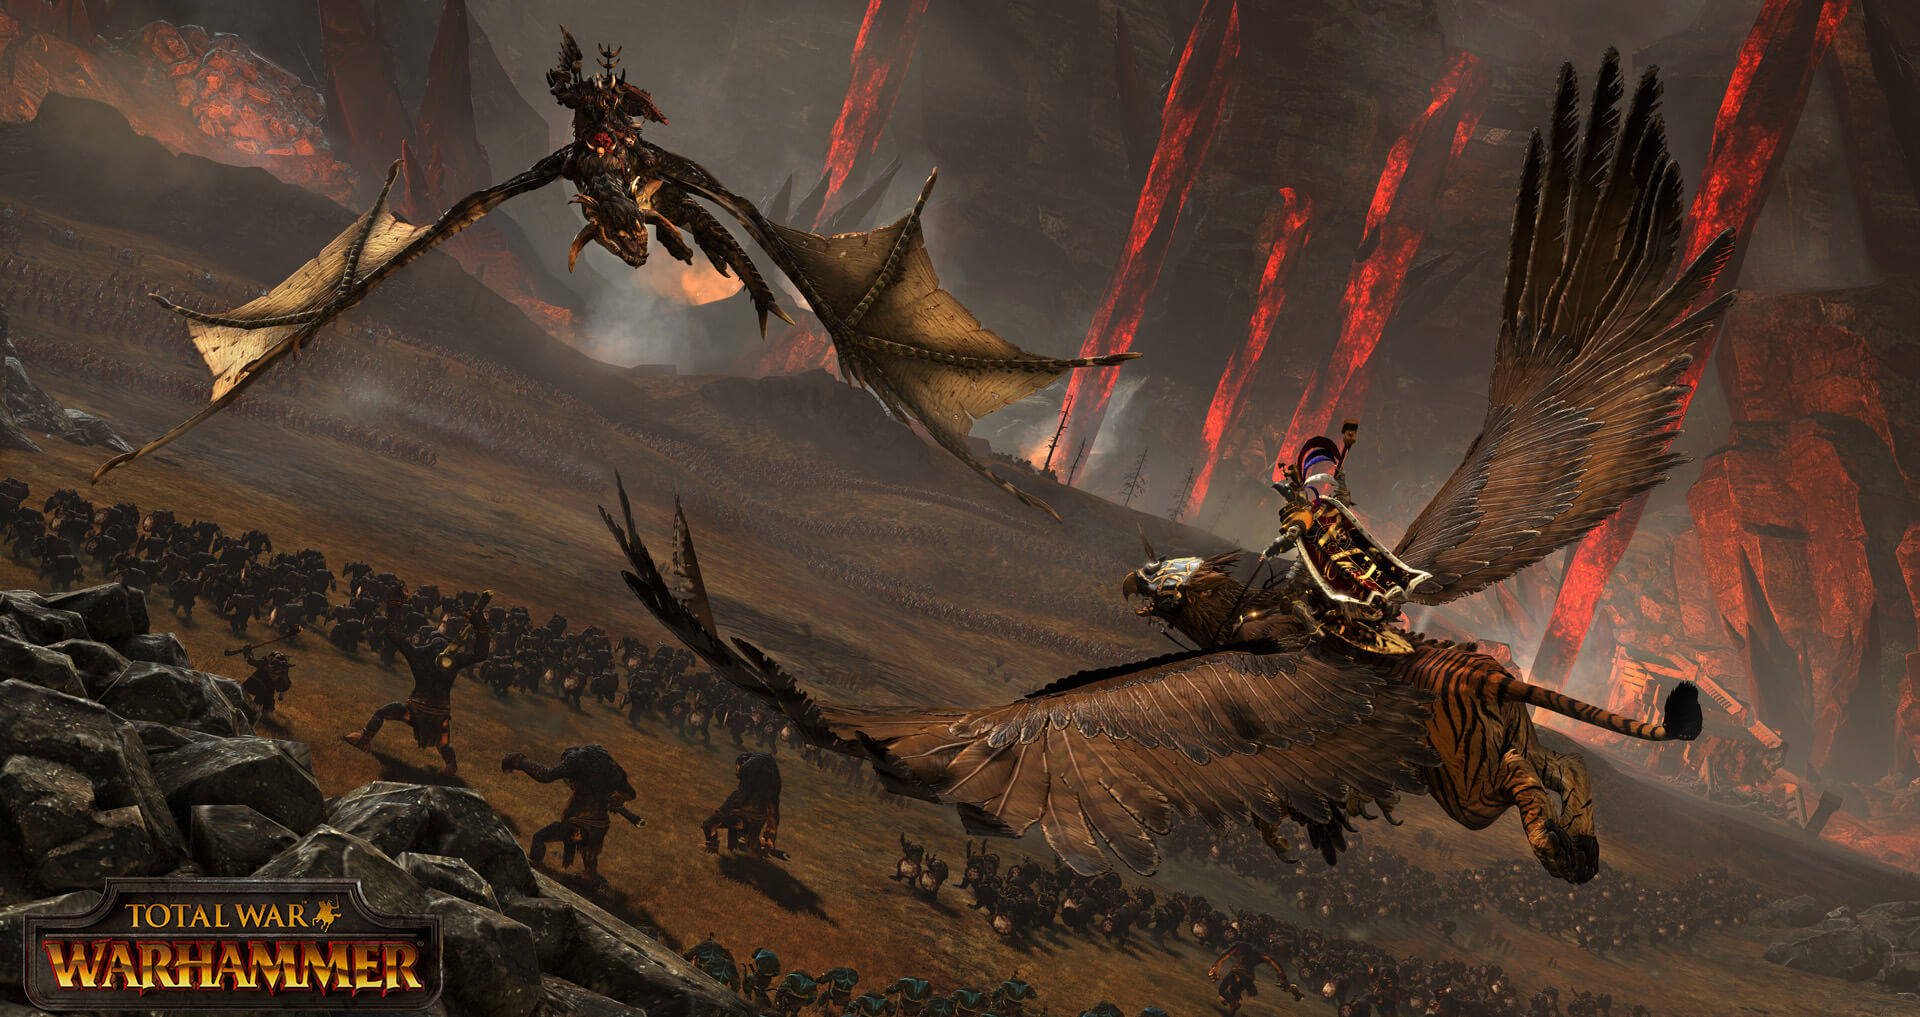 Total War: Warhammer - Upcoming Game May 2016